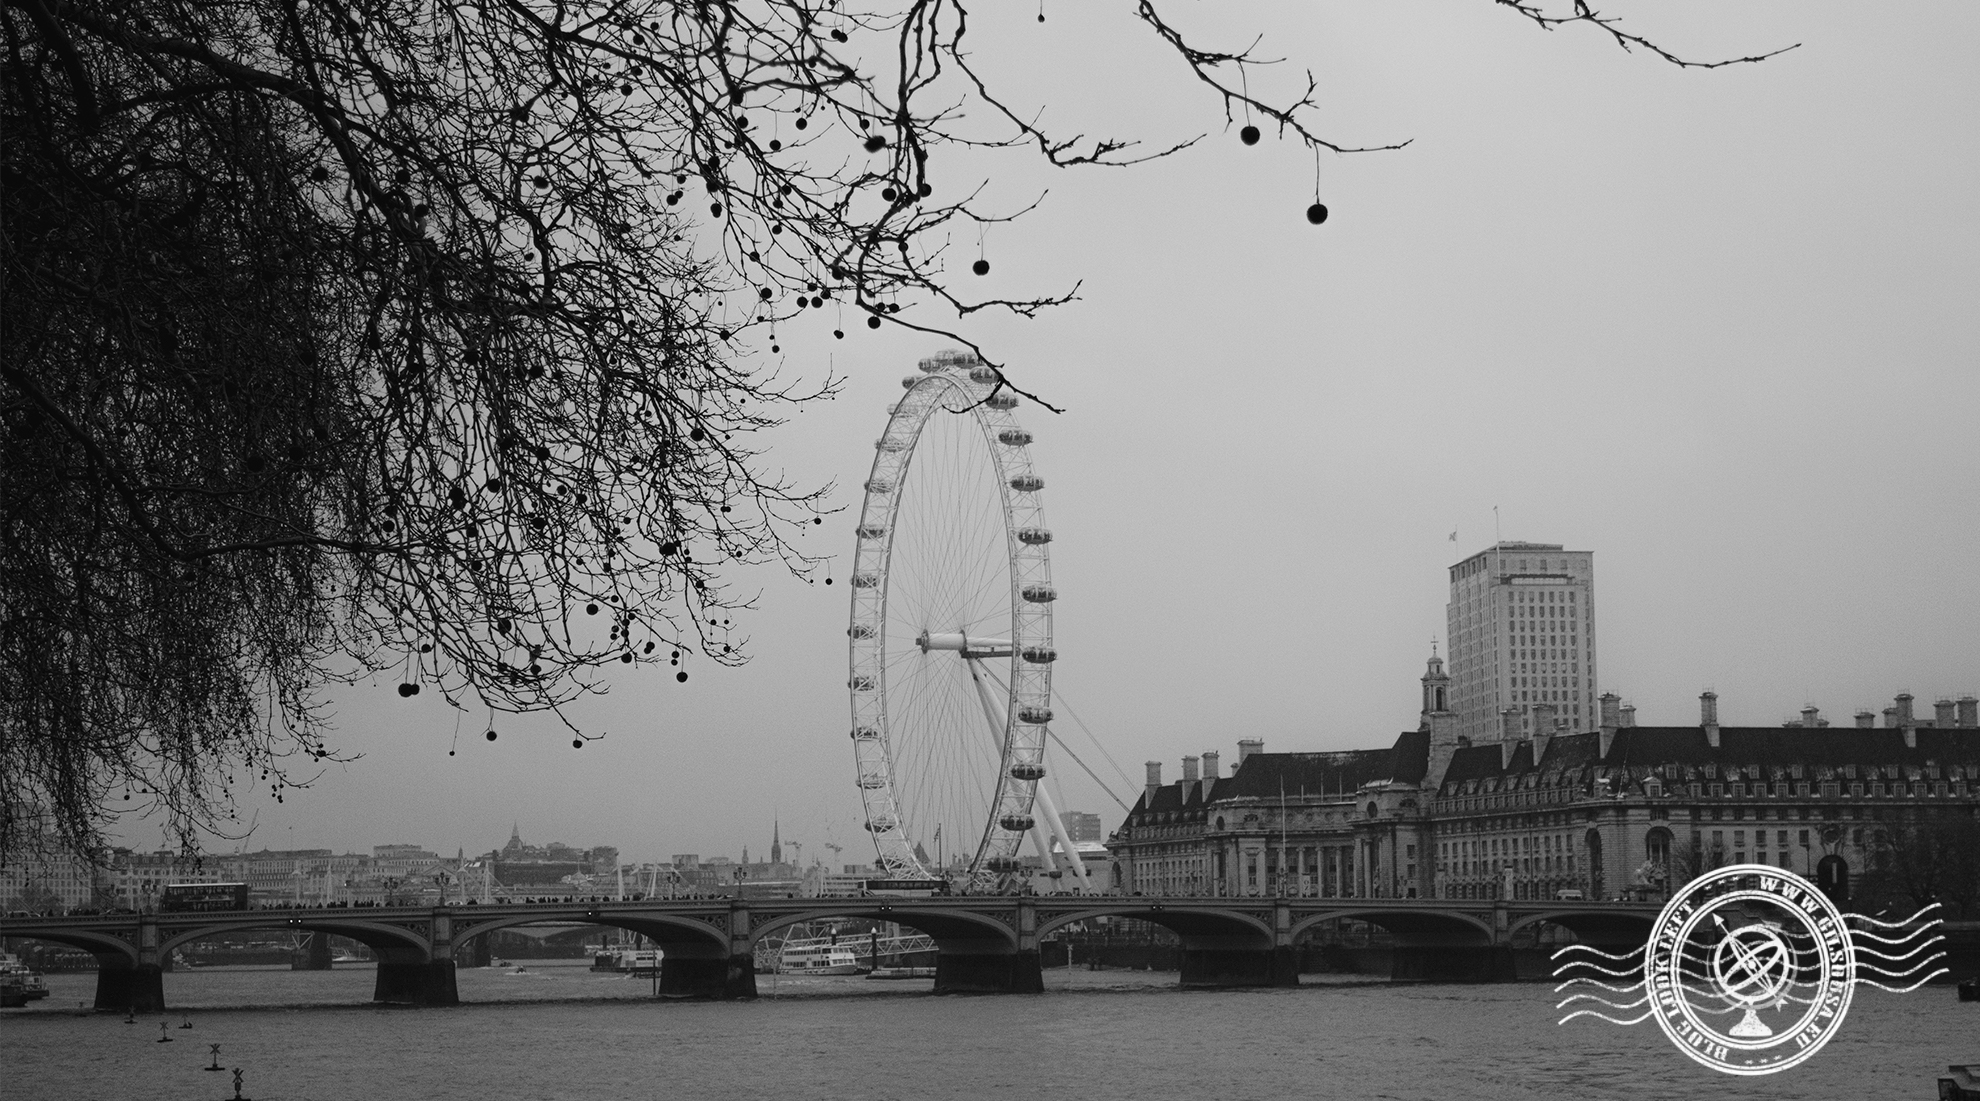 View over the London Eye